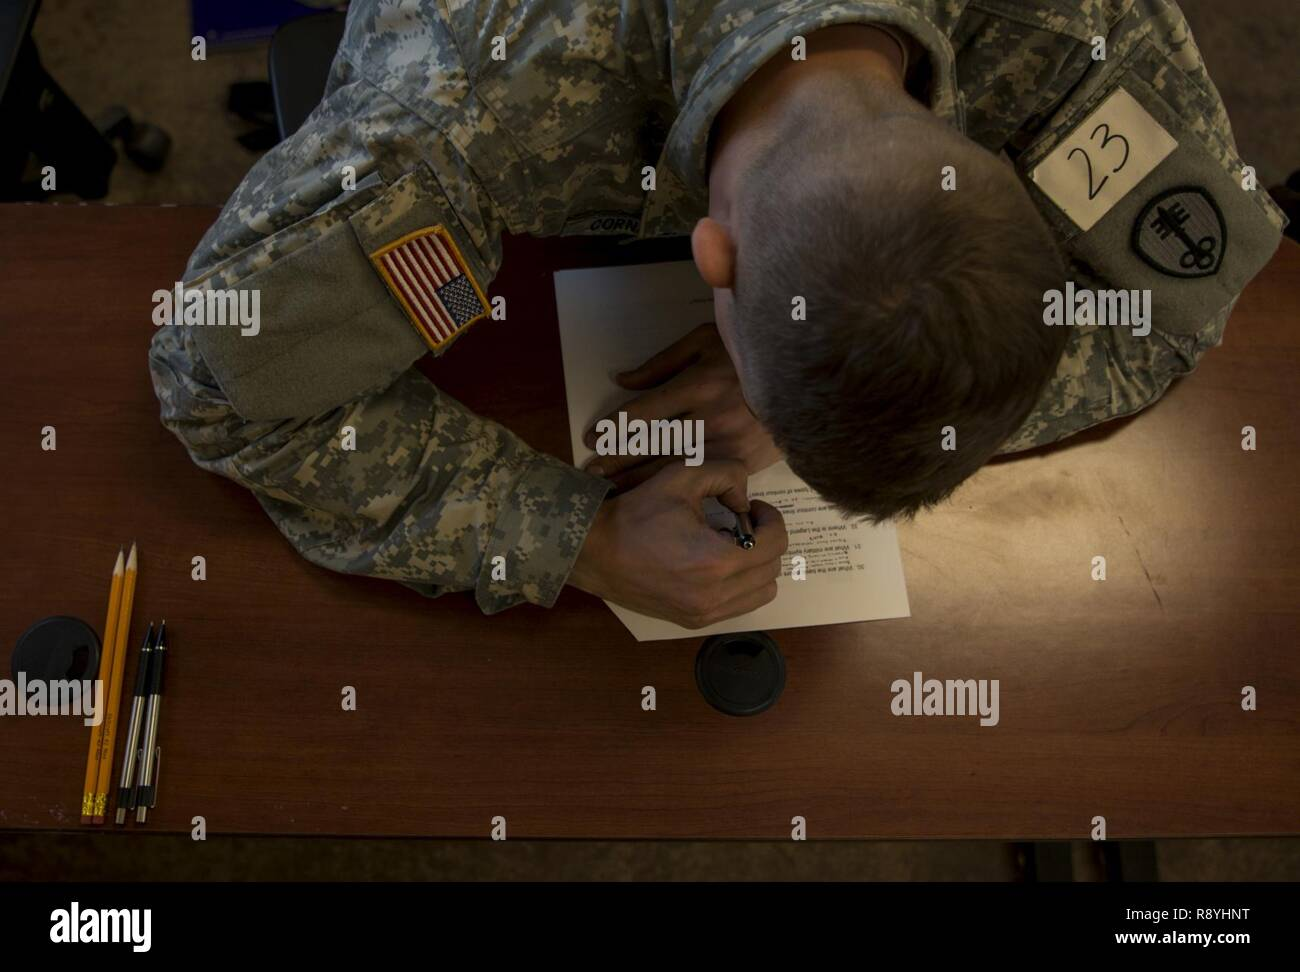 Army Fitness Test Stock Photos & Army Fitness Test Stock